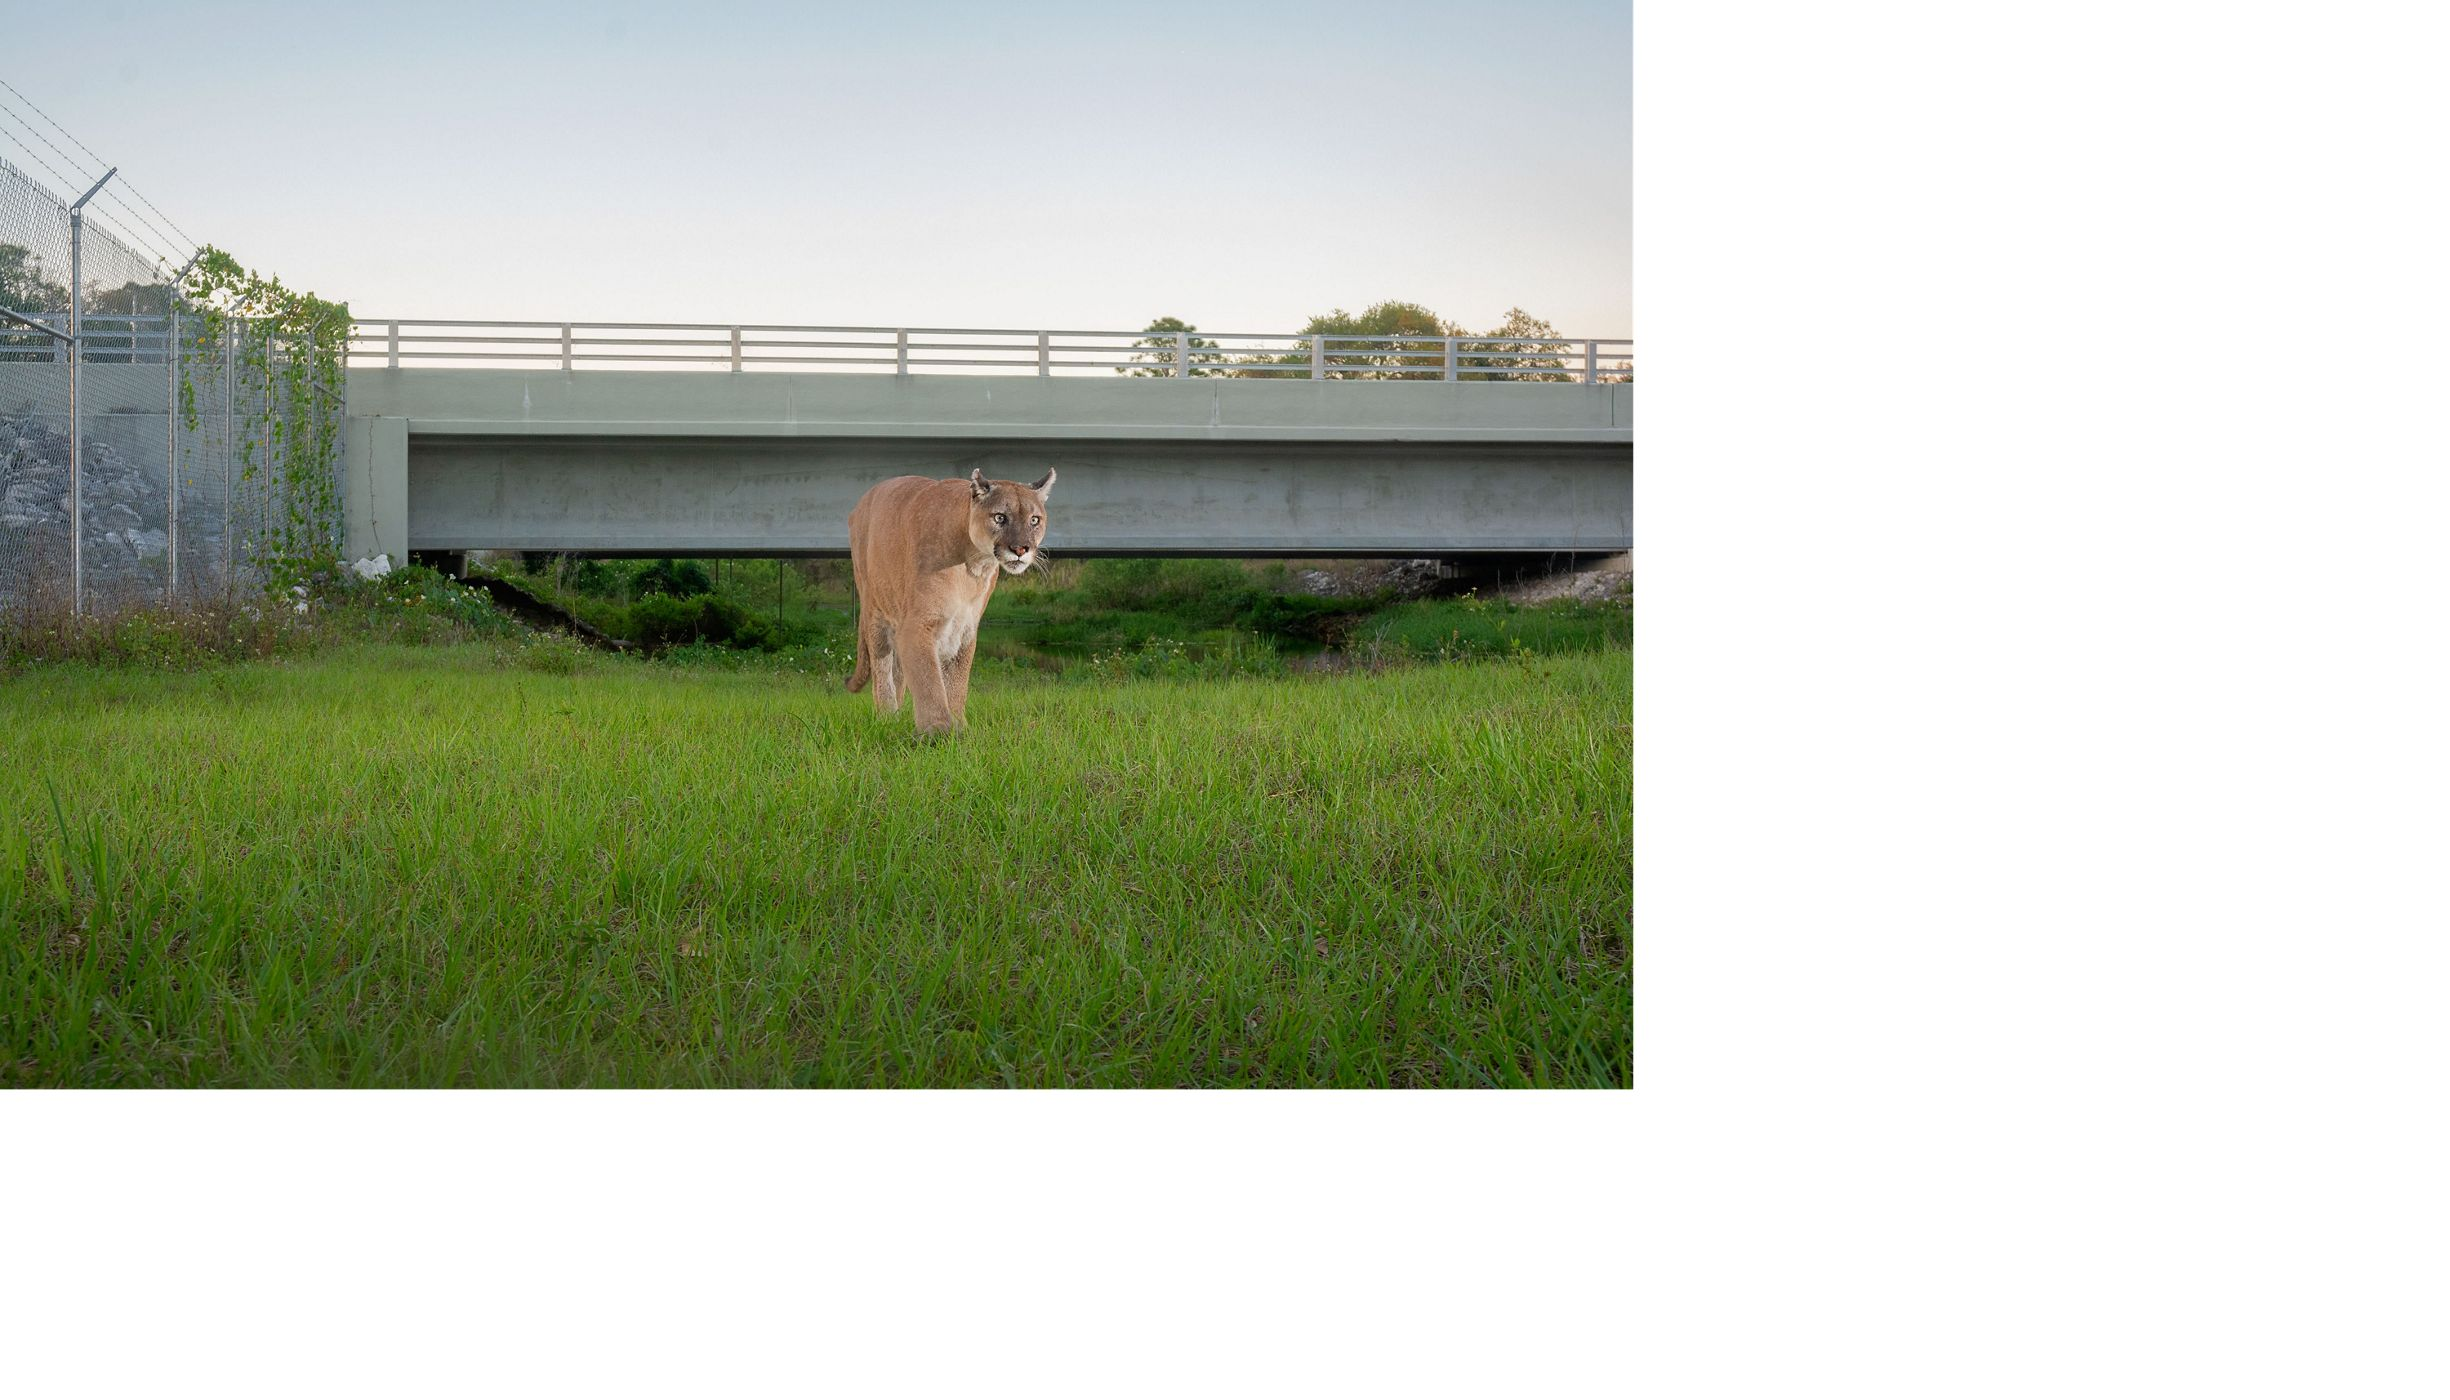 a panther uses a wildlife crossing to pass under a road